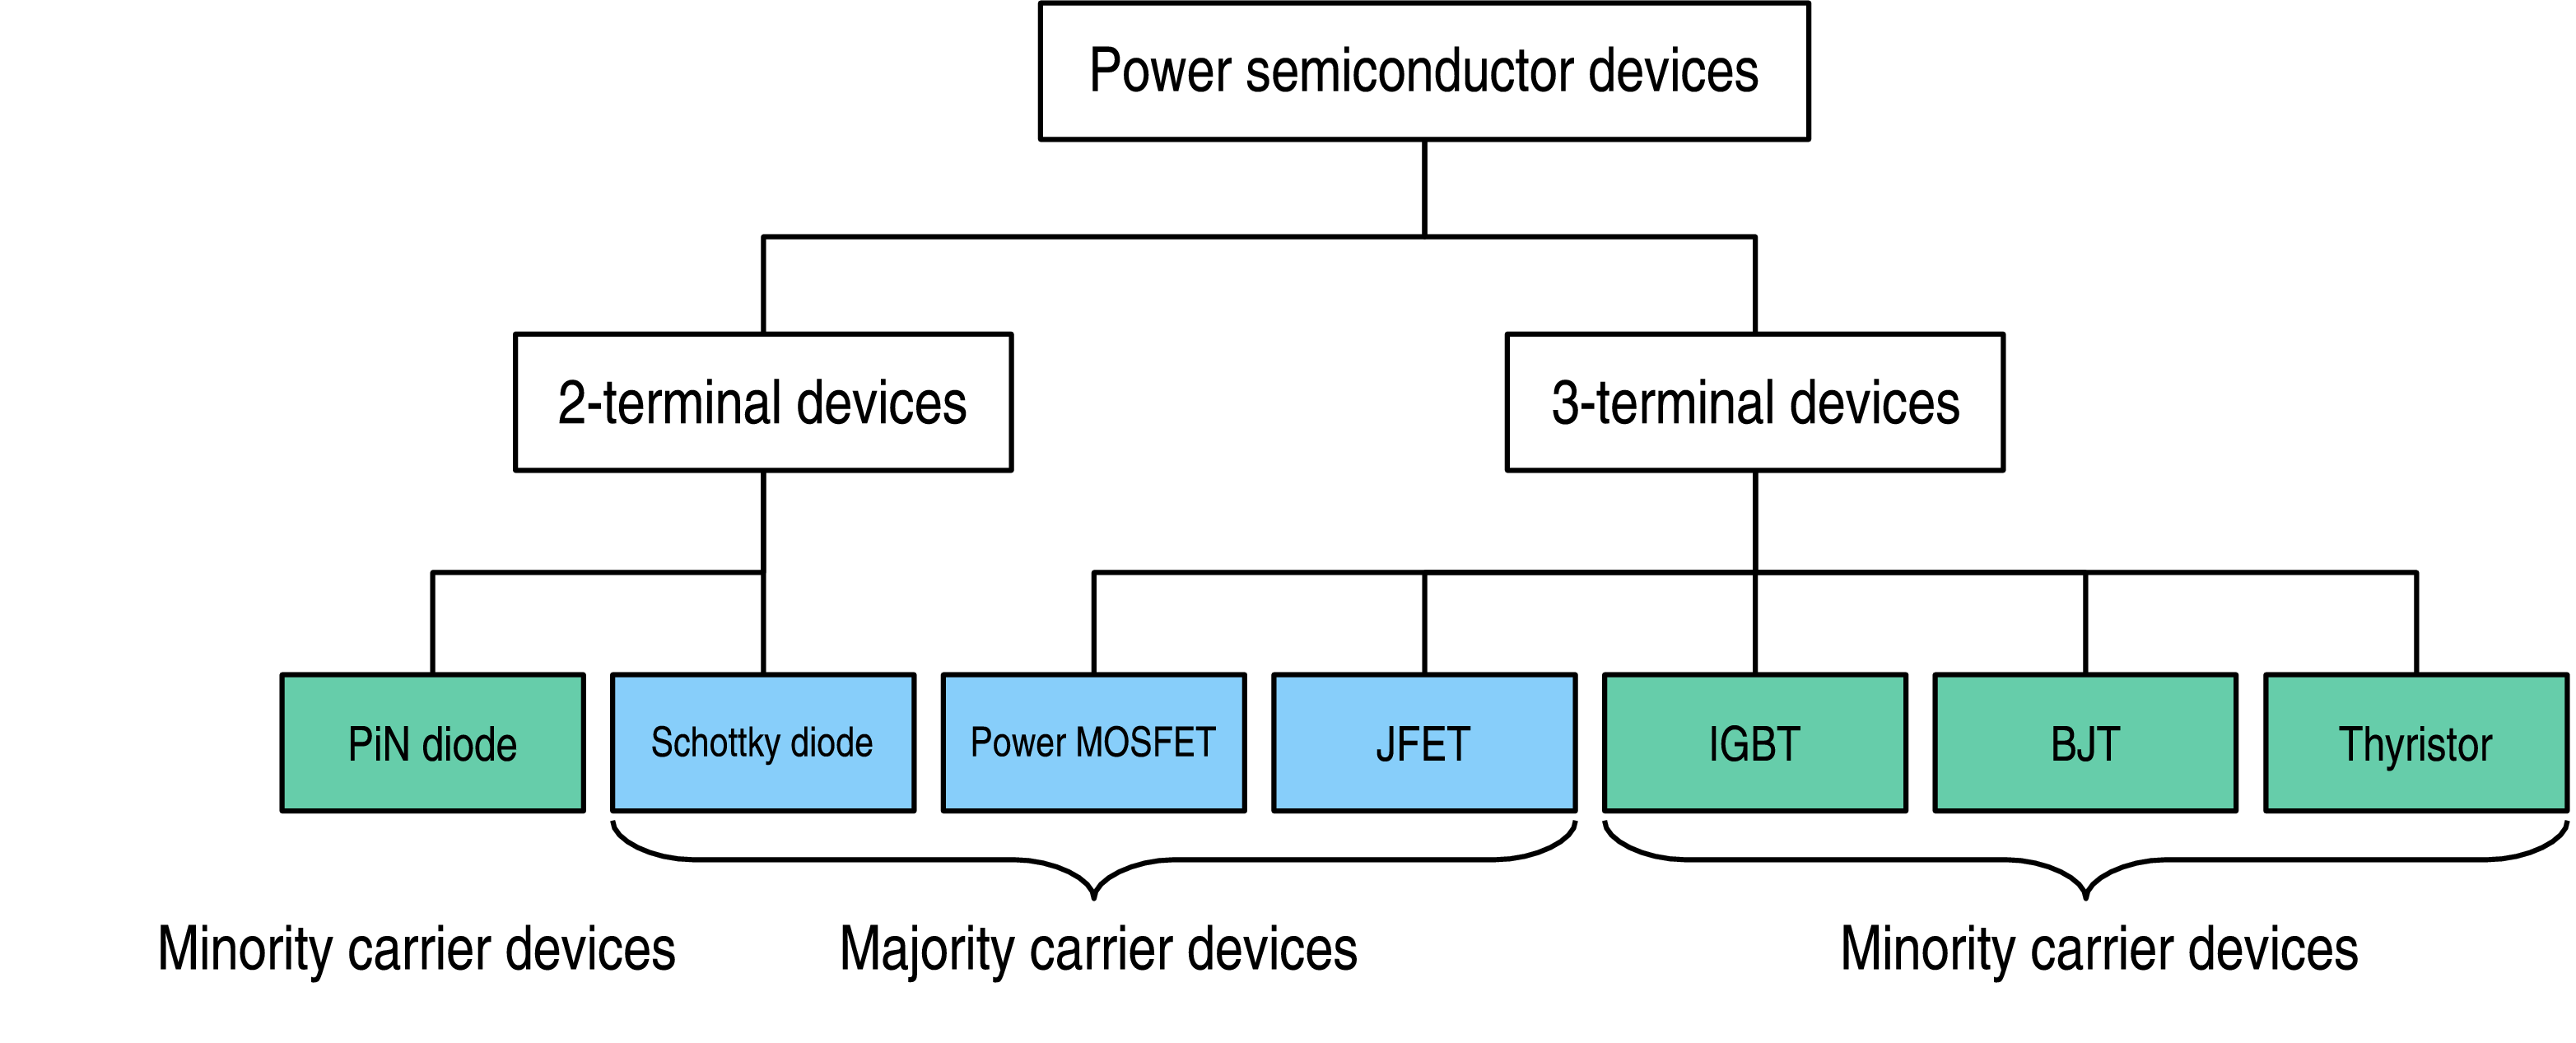 Power Semiconductor Device Wikiwand Scr Circuits Applications